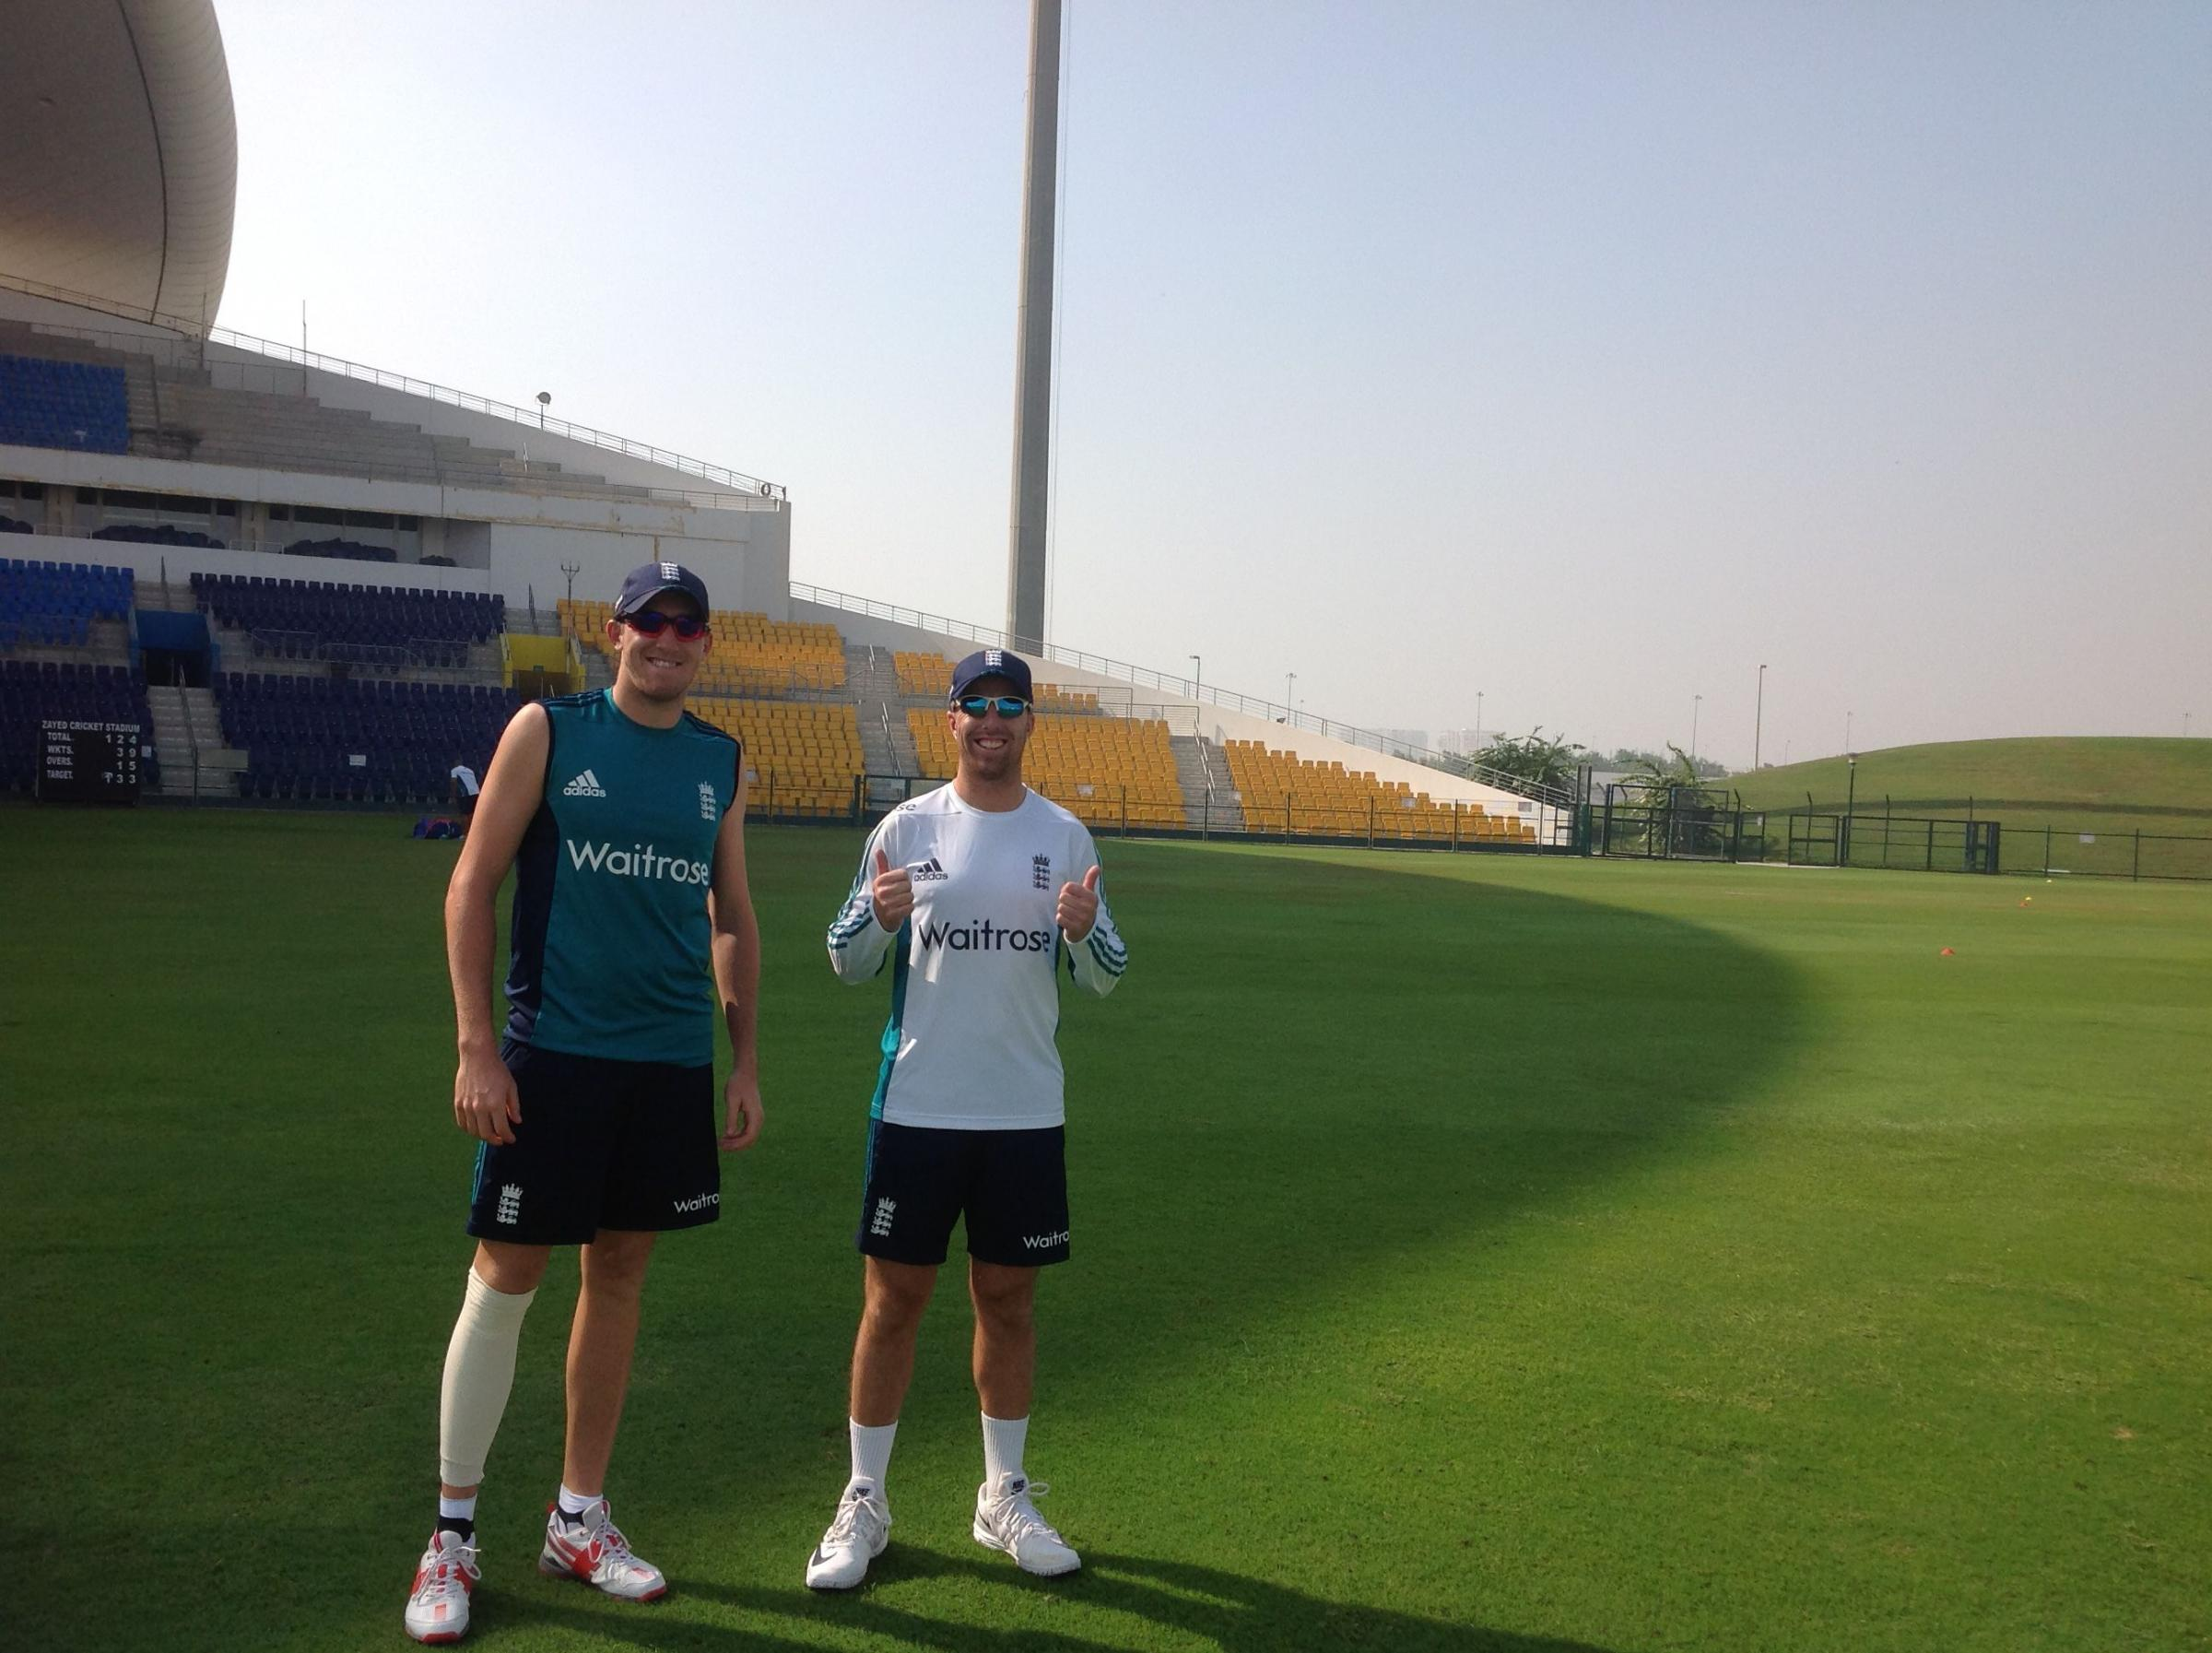 LIONS: Craig Overton and Jack Leach together on a previous Lions tour in Sri Lanka.